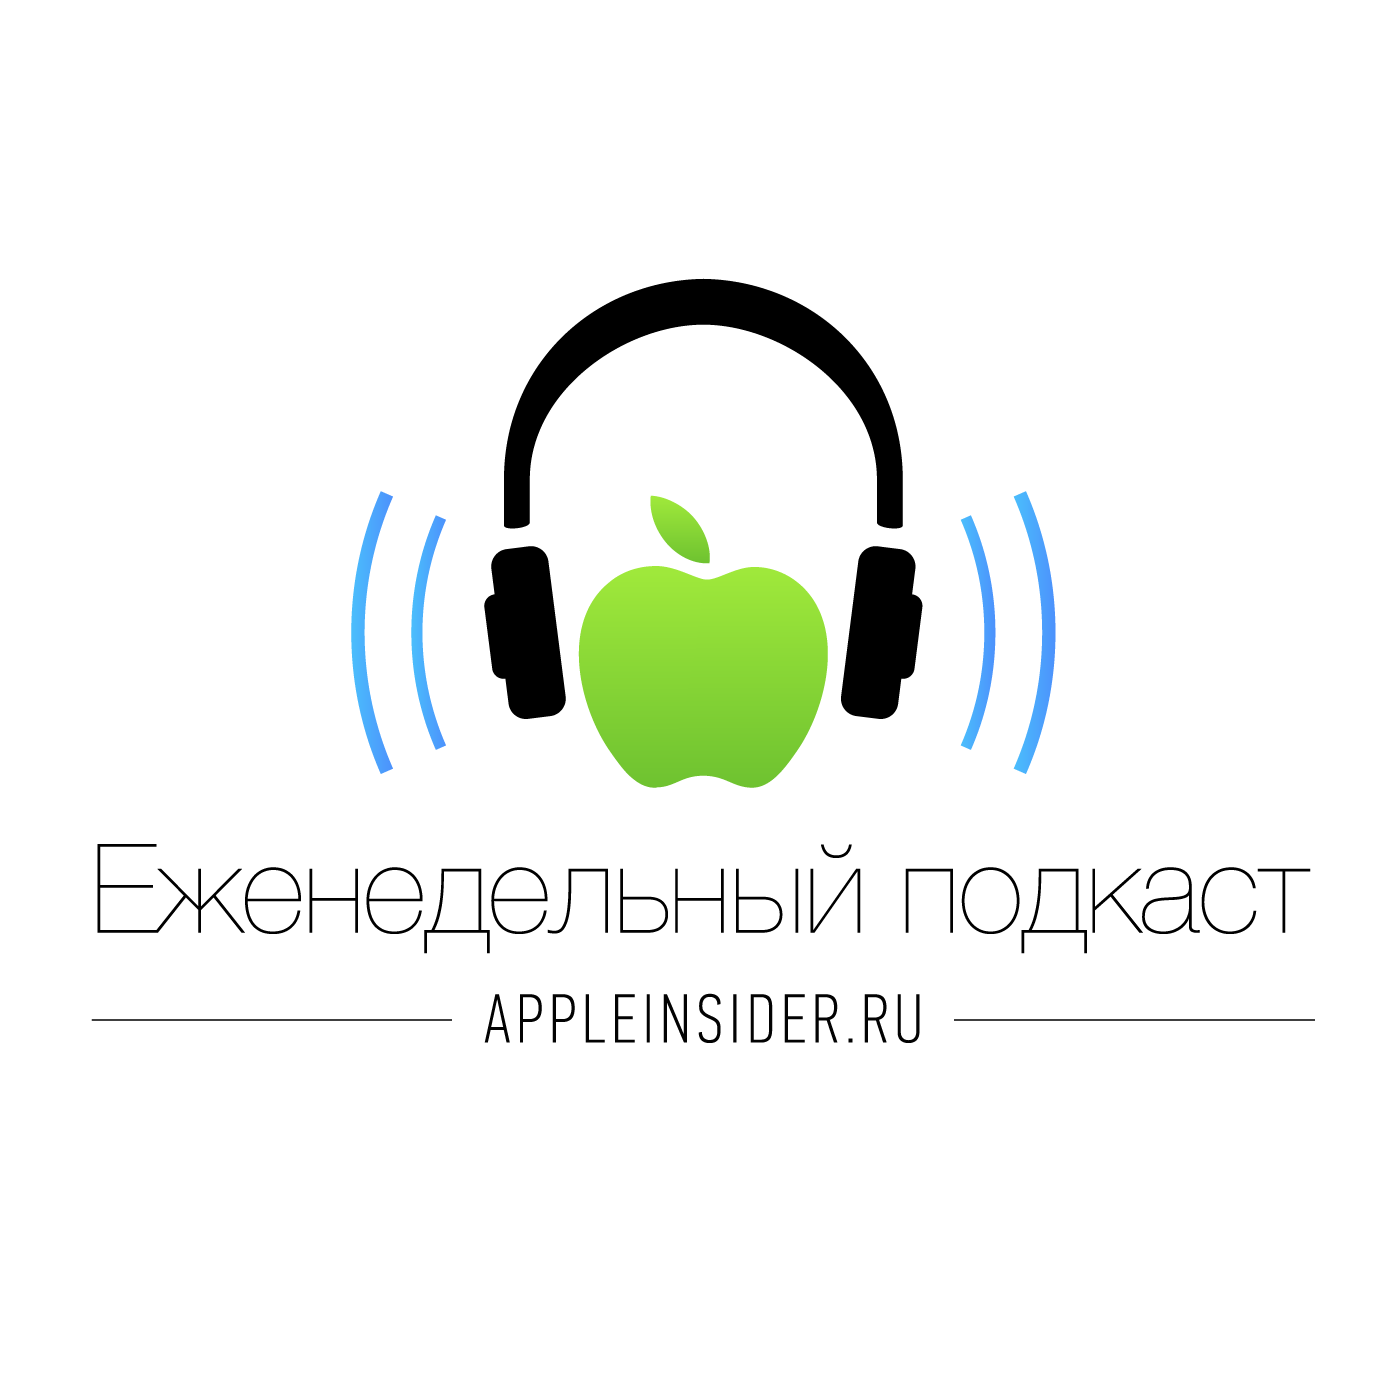 Миша Королев Apple больше не будет производить беспроводные роутеры sinairyu hd 800 480 car mirror monitor 5 tft lcd mirror car parking rear view monitor 2 video input connect rear front camera